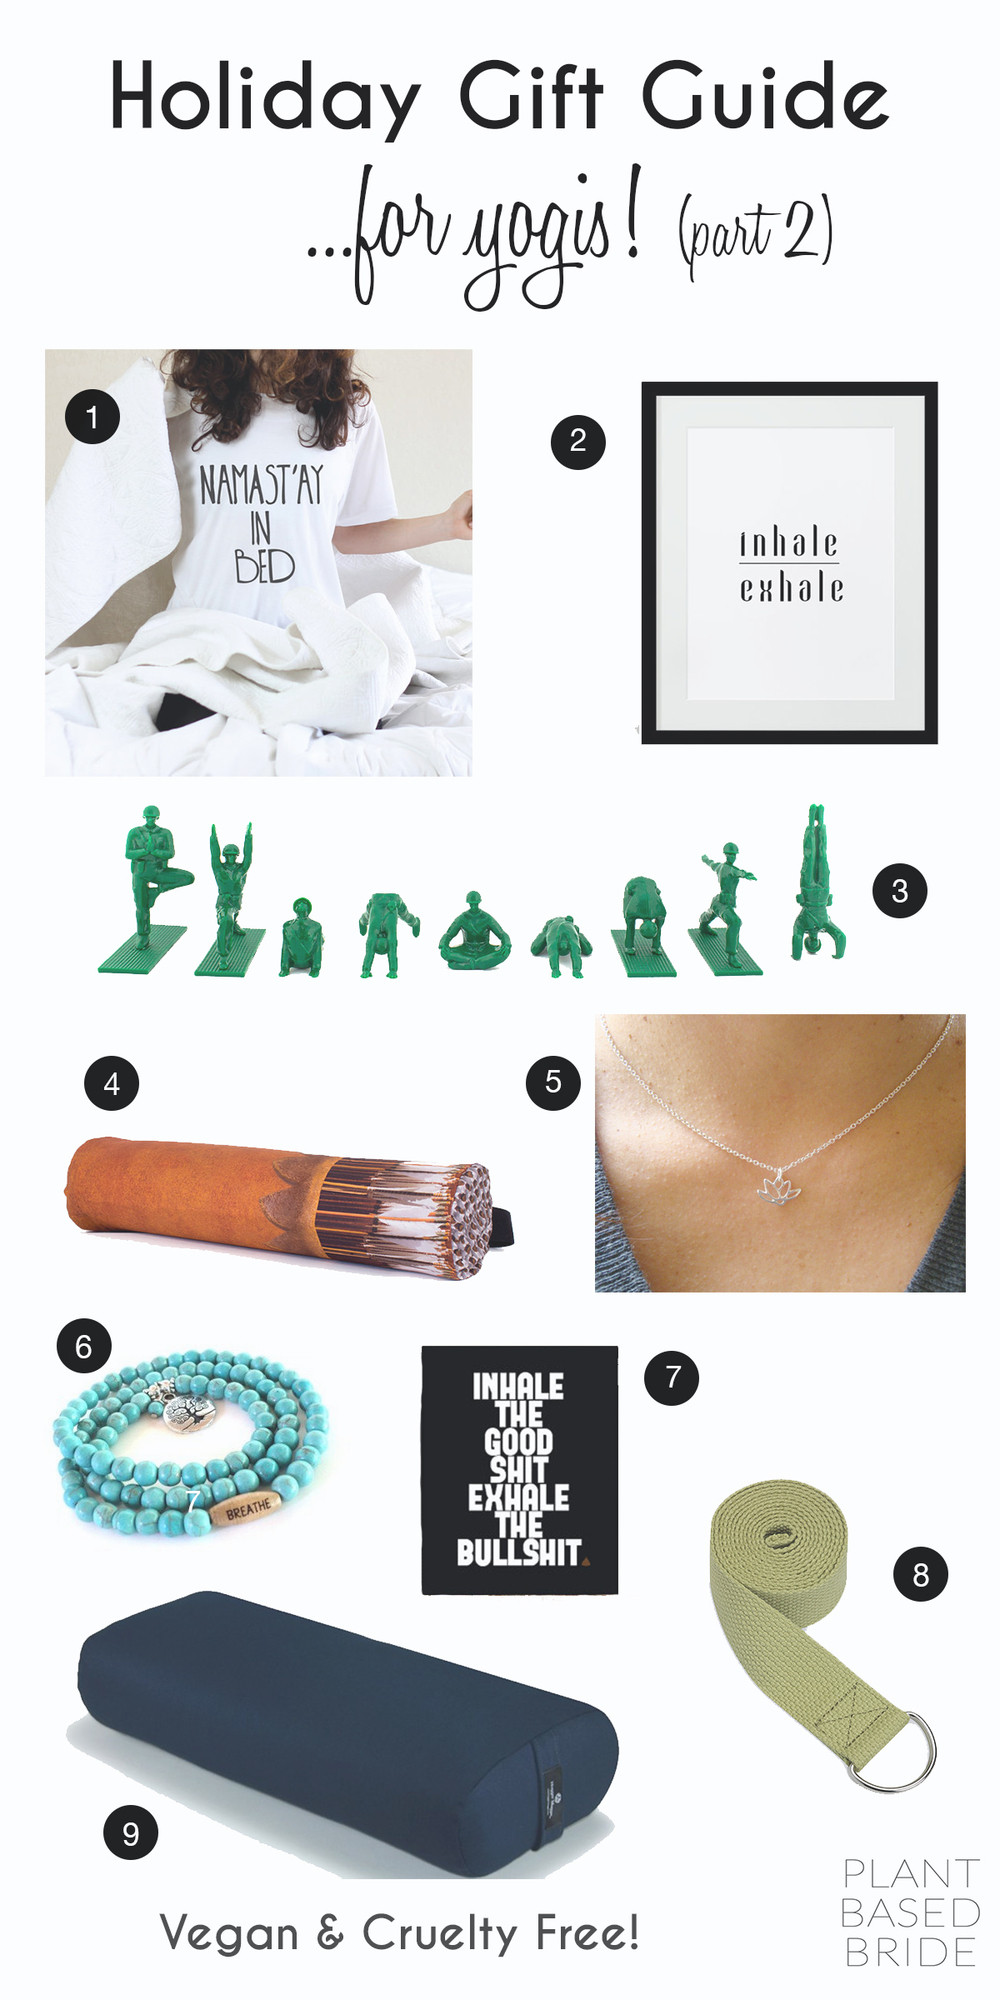 Quirky and fun gifts for the yogi in your life!  100% vegan and cruelty free from plant based bride